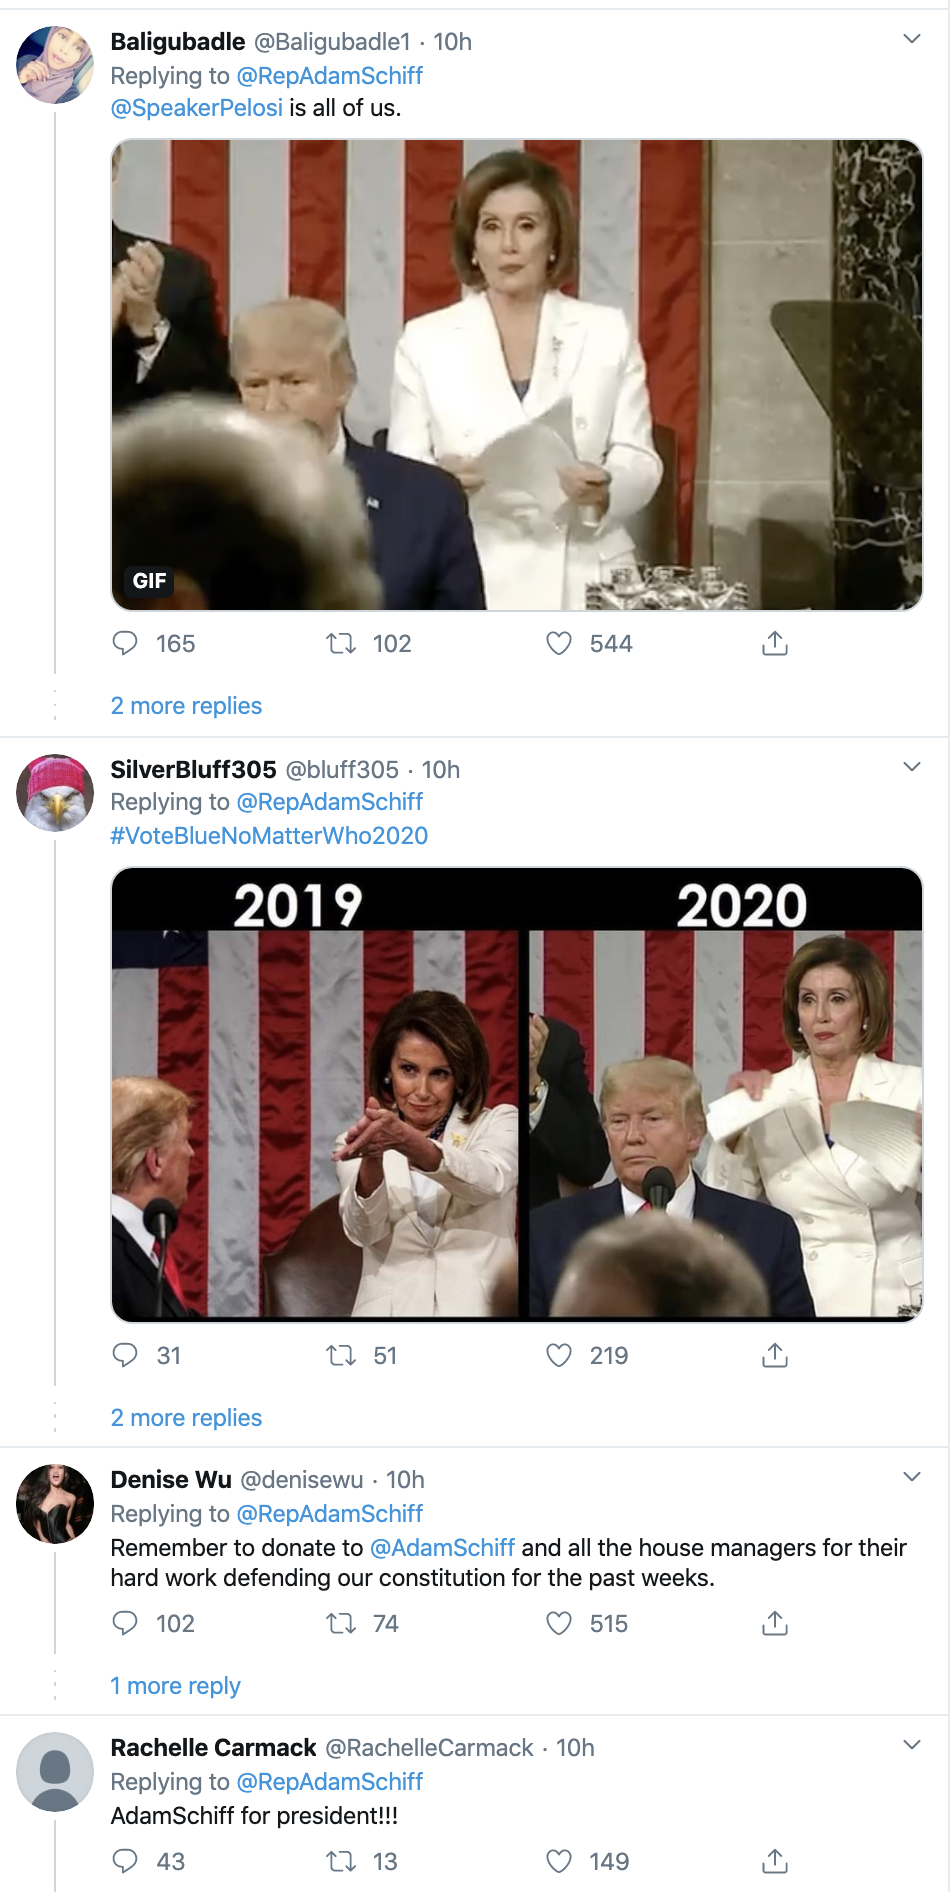 Screen-Shot-2020-02-05-at-9.00.15-AM Schiff Upstages Trump During SOTU With Snarky Twitter Trolling Featured Impeachment Politics Top Stories Twitter